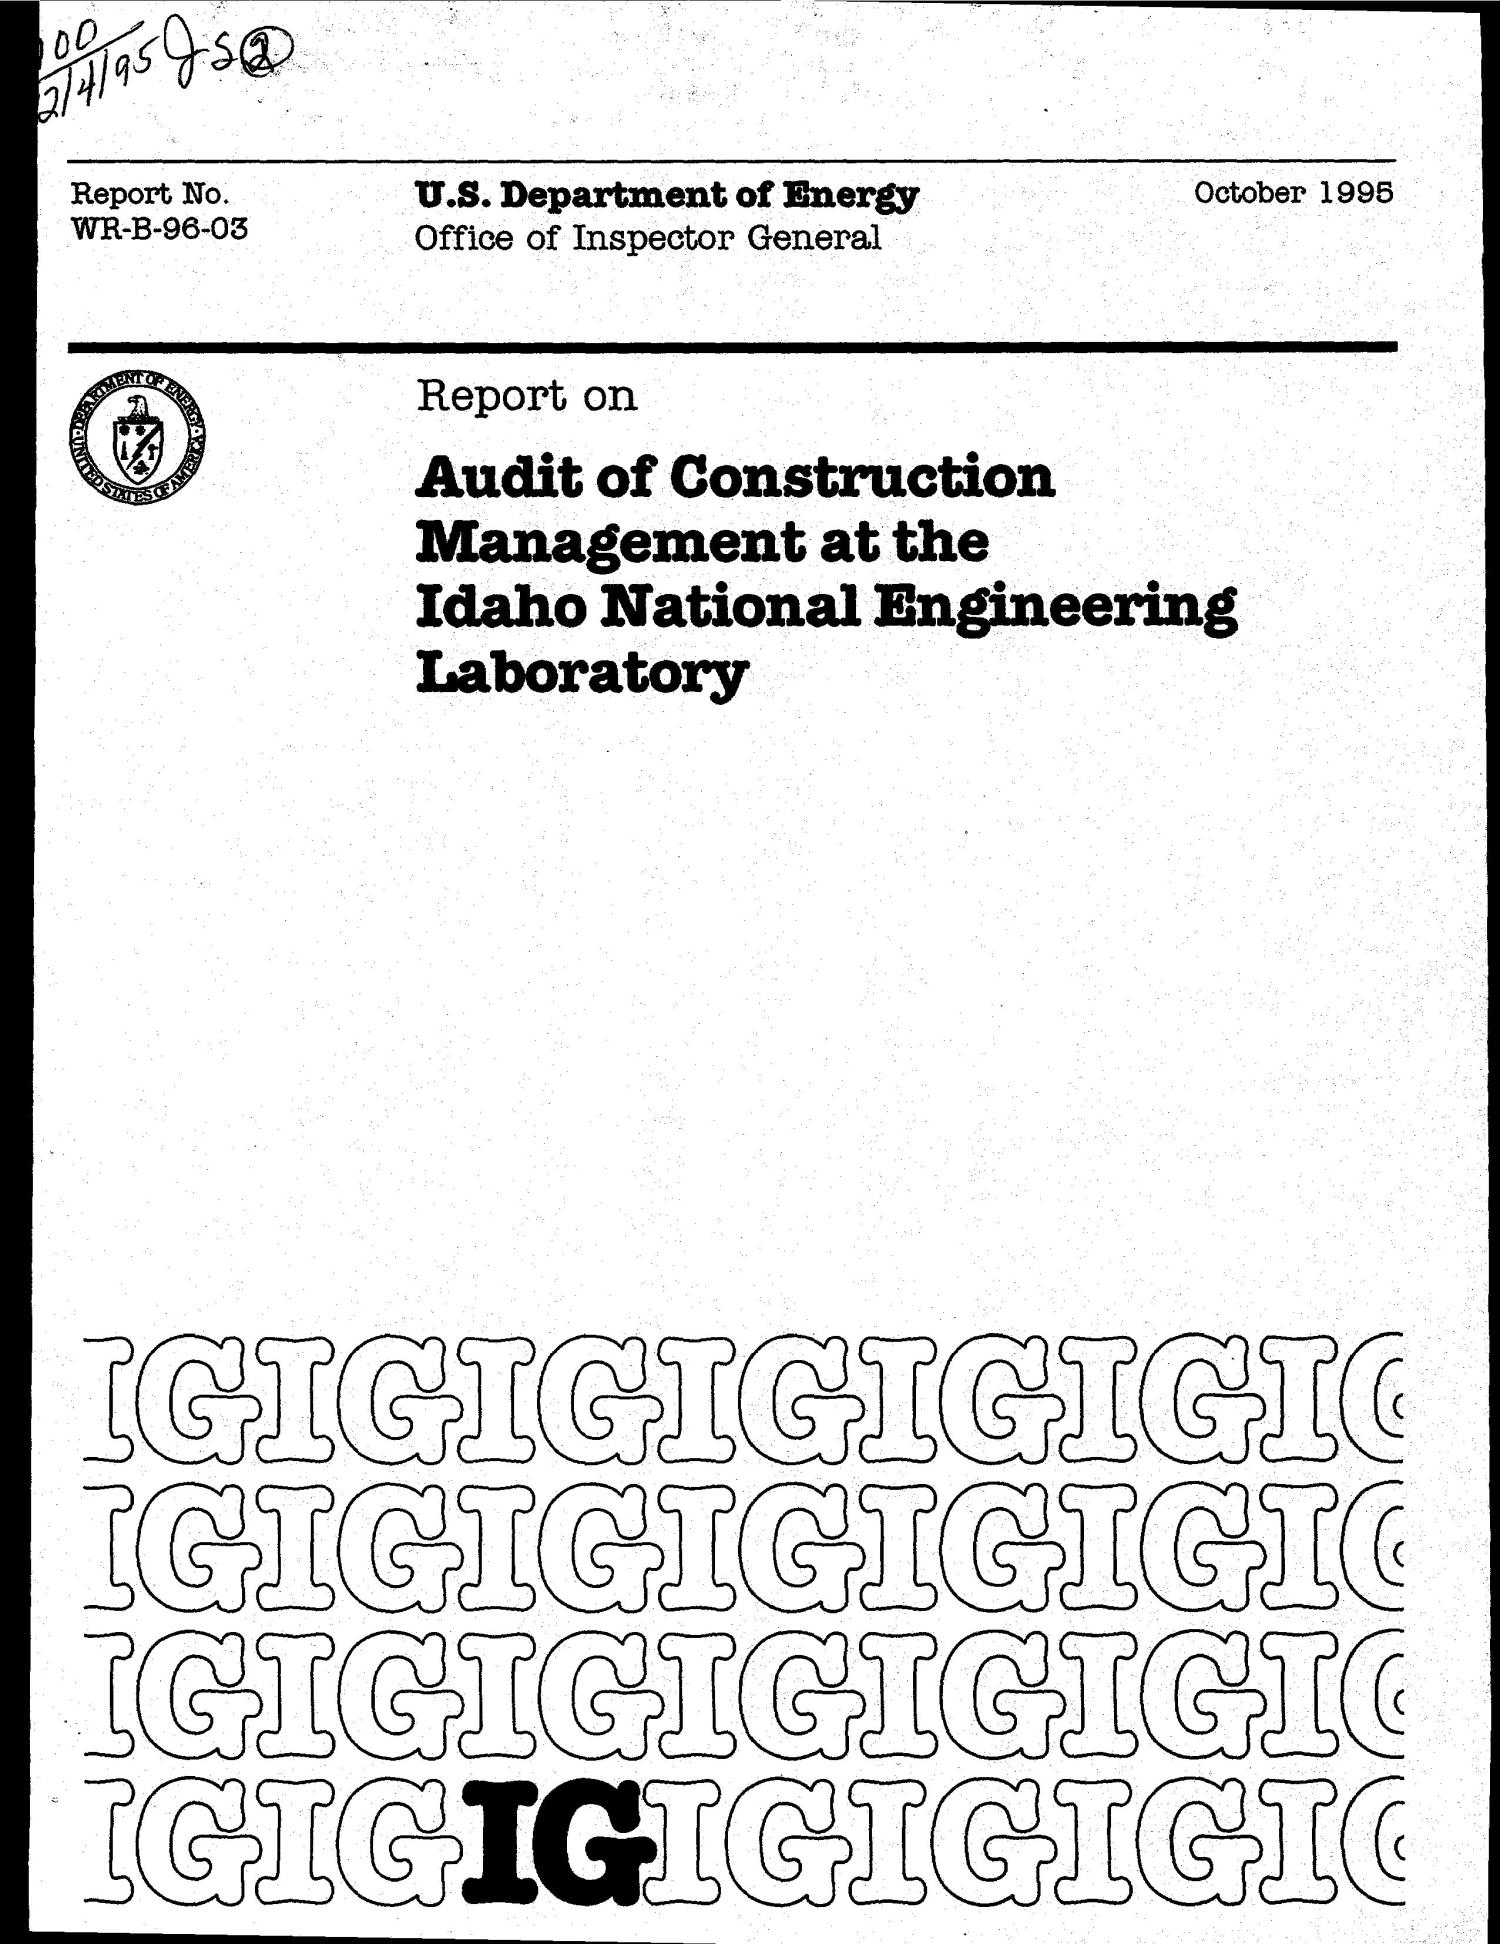 Audit of construction management at the Idaho National Engineering Laboratory                                                                                                      [Sequence #]: 1 of 21